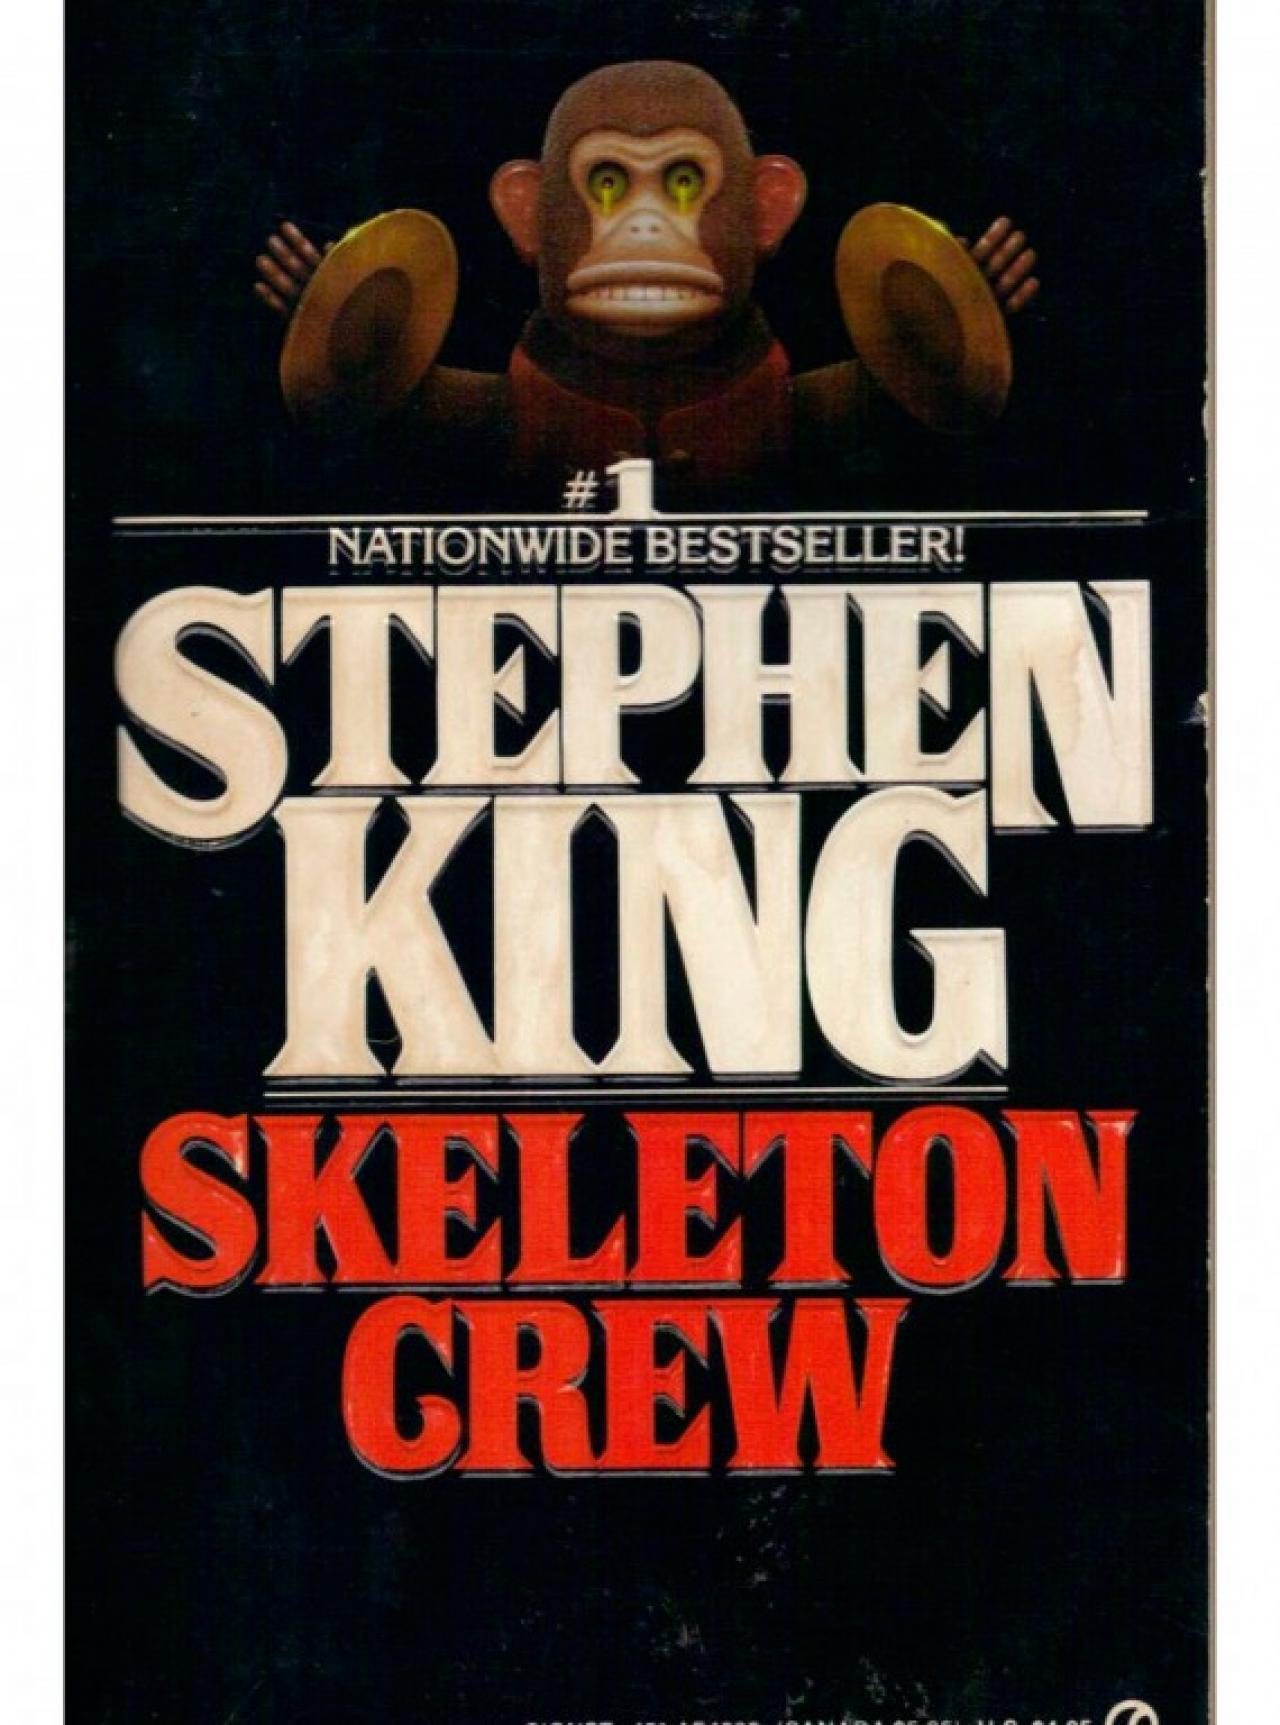 What is the theme in the book Cell by Stephen King?